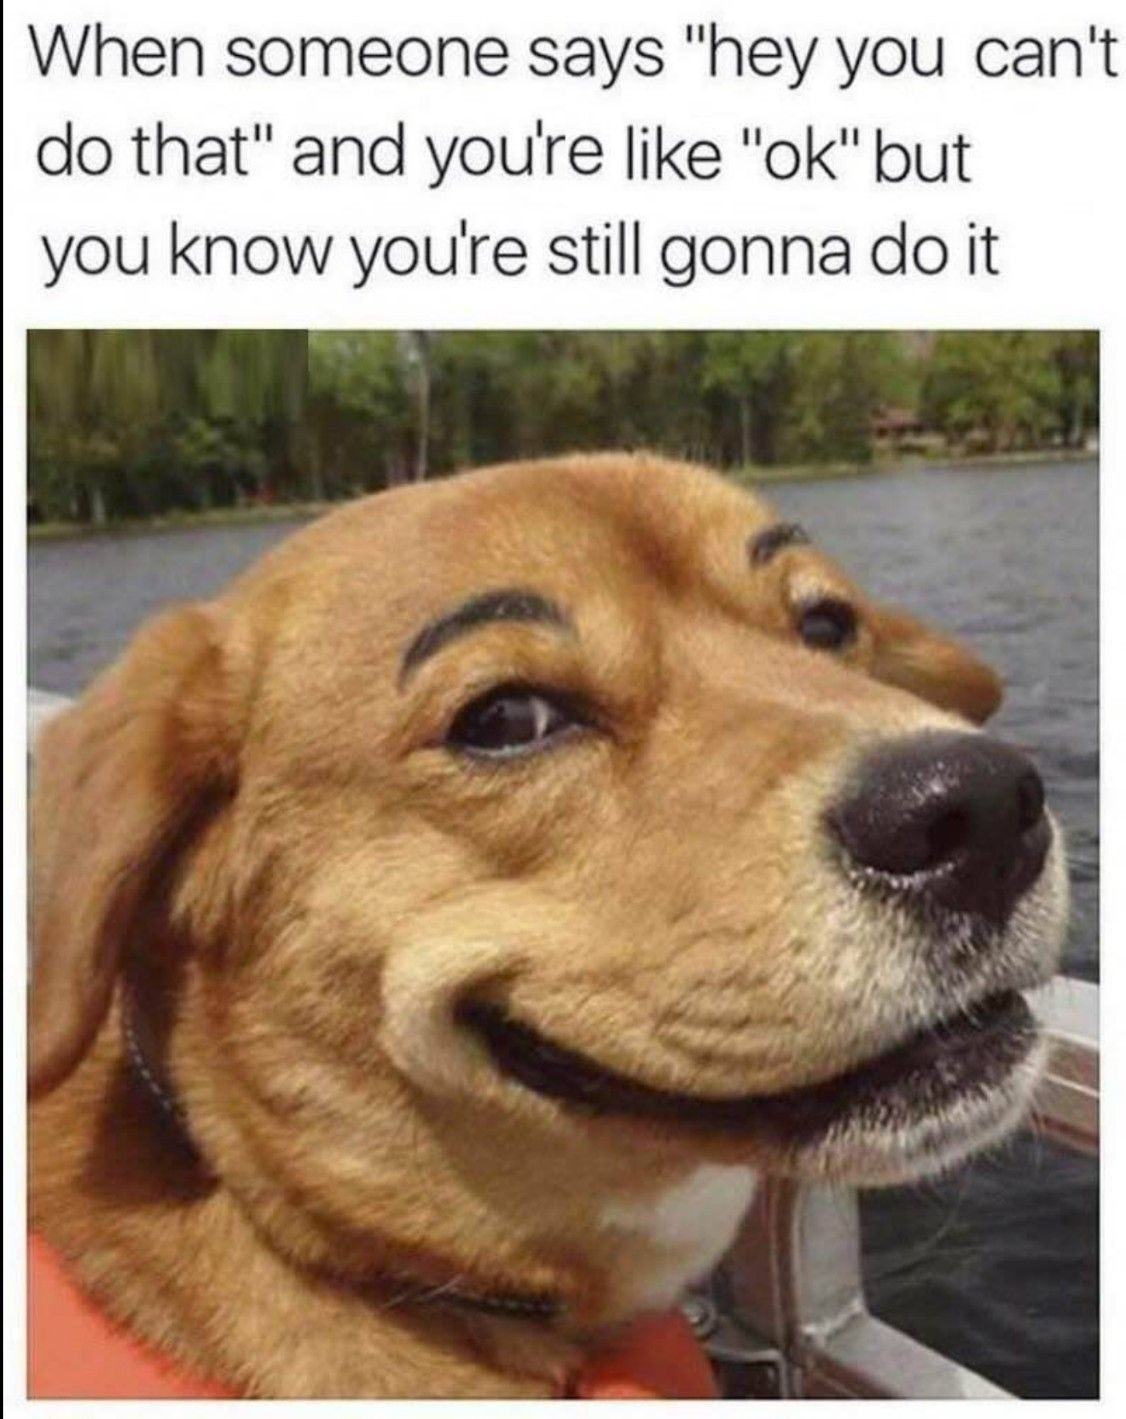 100 Pet Memes That Will Make You Lol Over And Over Again Funny Dog Memes Funny Animal Memes Funny Animal Pictures